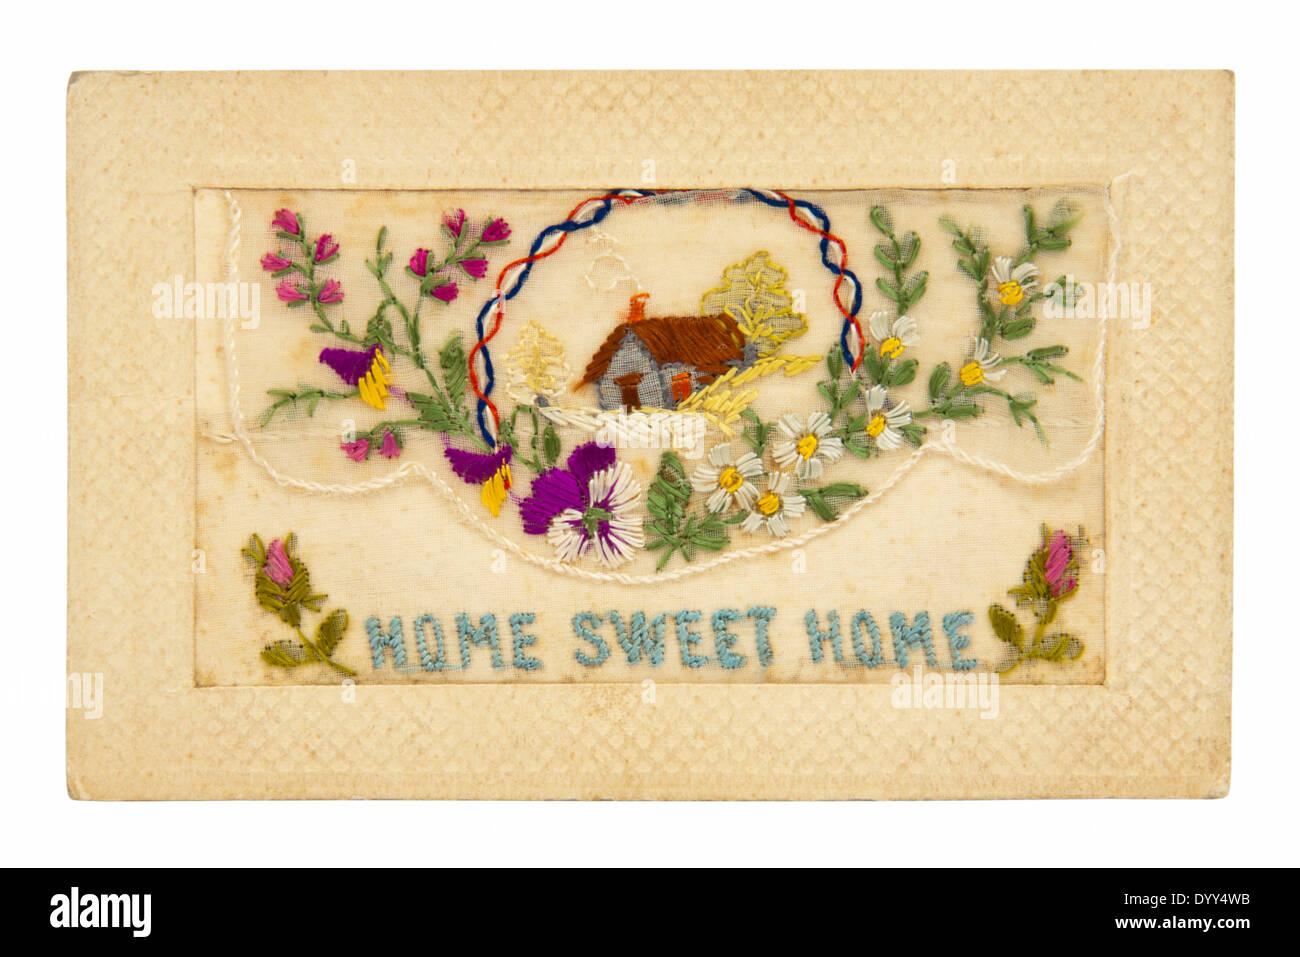 Vintage WW1 embroidered greeting card with the message 'Home Sweet Home' - Stock Image